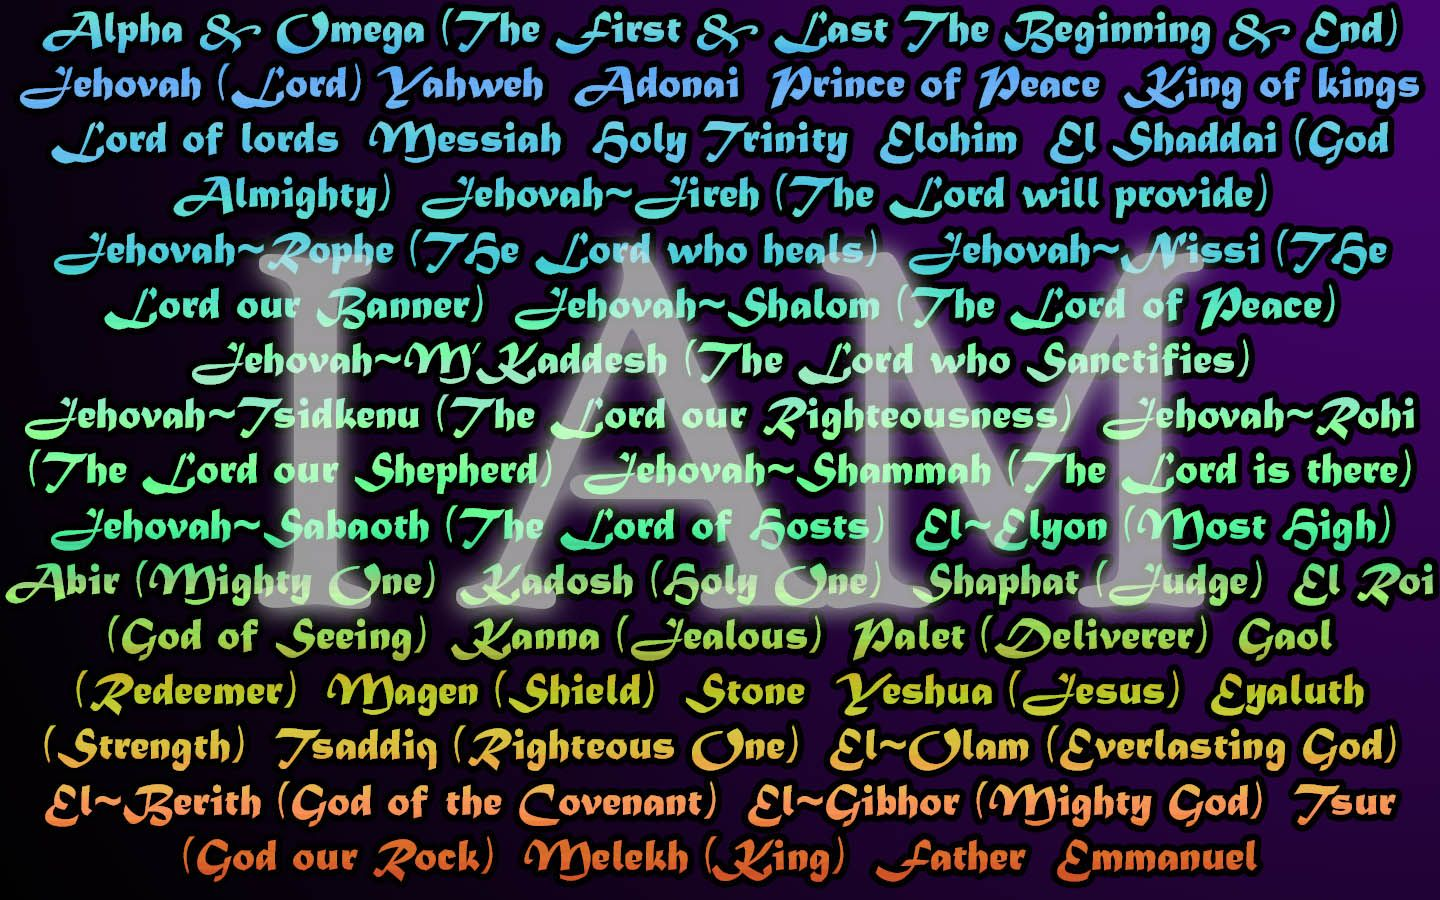 Barnes Bible Charts Names of God I AM Exodus 314 THE GOD OF THE SPIRITS OF ALL FLESH Numbers 1622 THE LIVING GOD Matthew 1616 THE GOD OF ALL